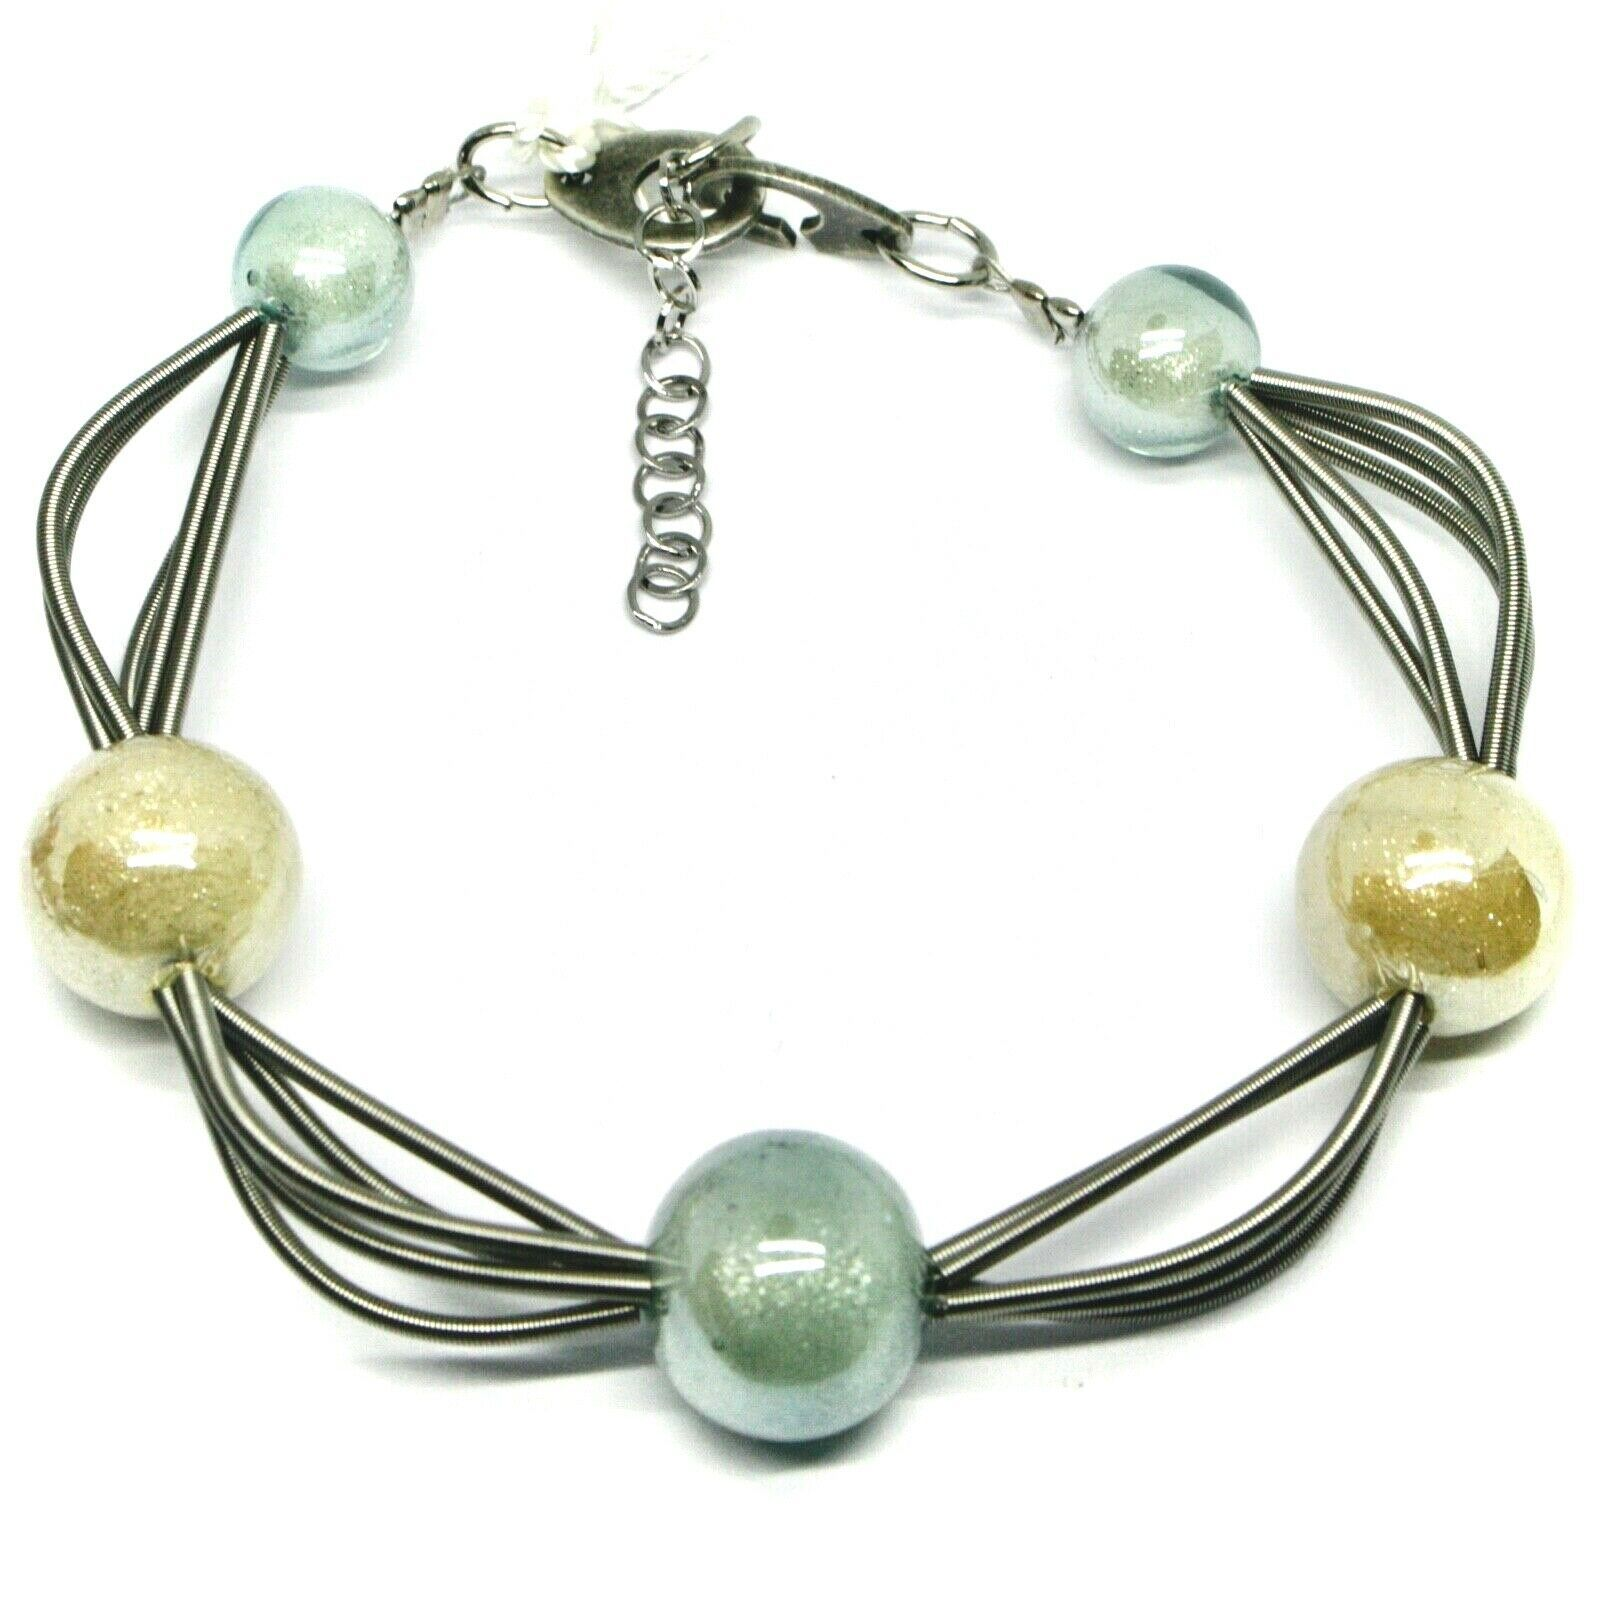 """MULTI WIRES BRACELET BLUE YELLOW SPHERES MURANO GLASS, 20cm 7.9"""", ITALY MADE"""